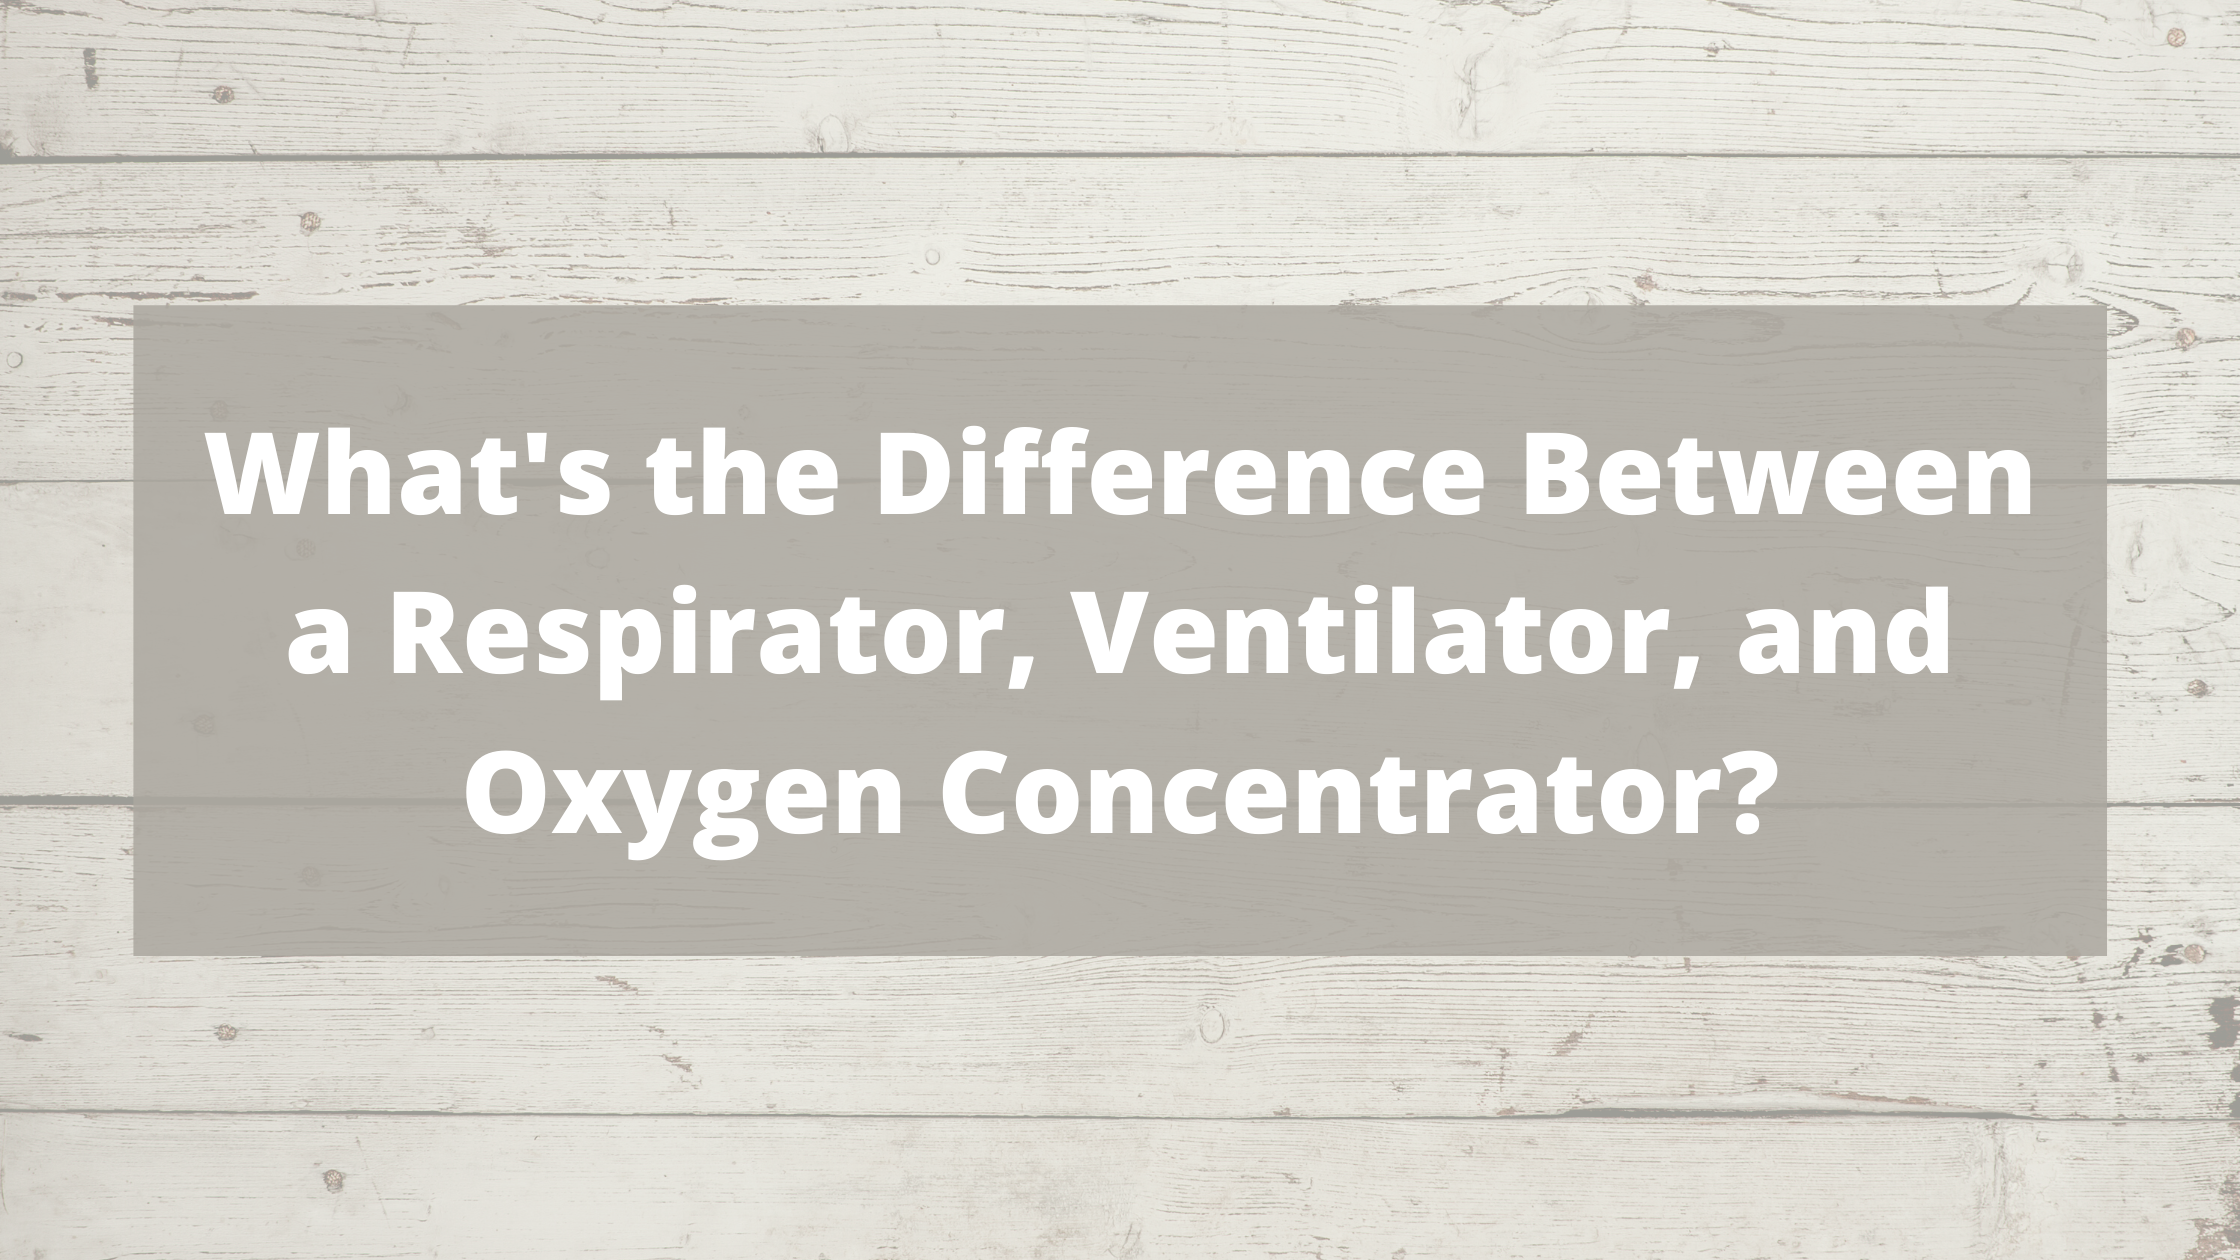 Whats the Difference Between a Respirator, Ventilator, and Oxygen Concentrator?